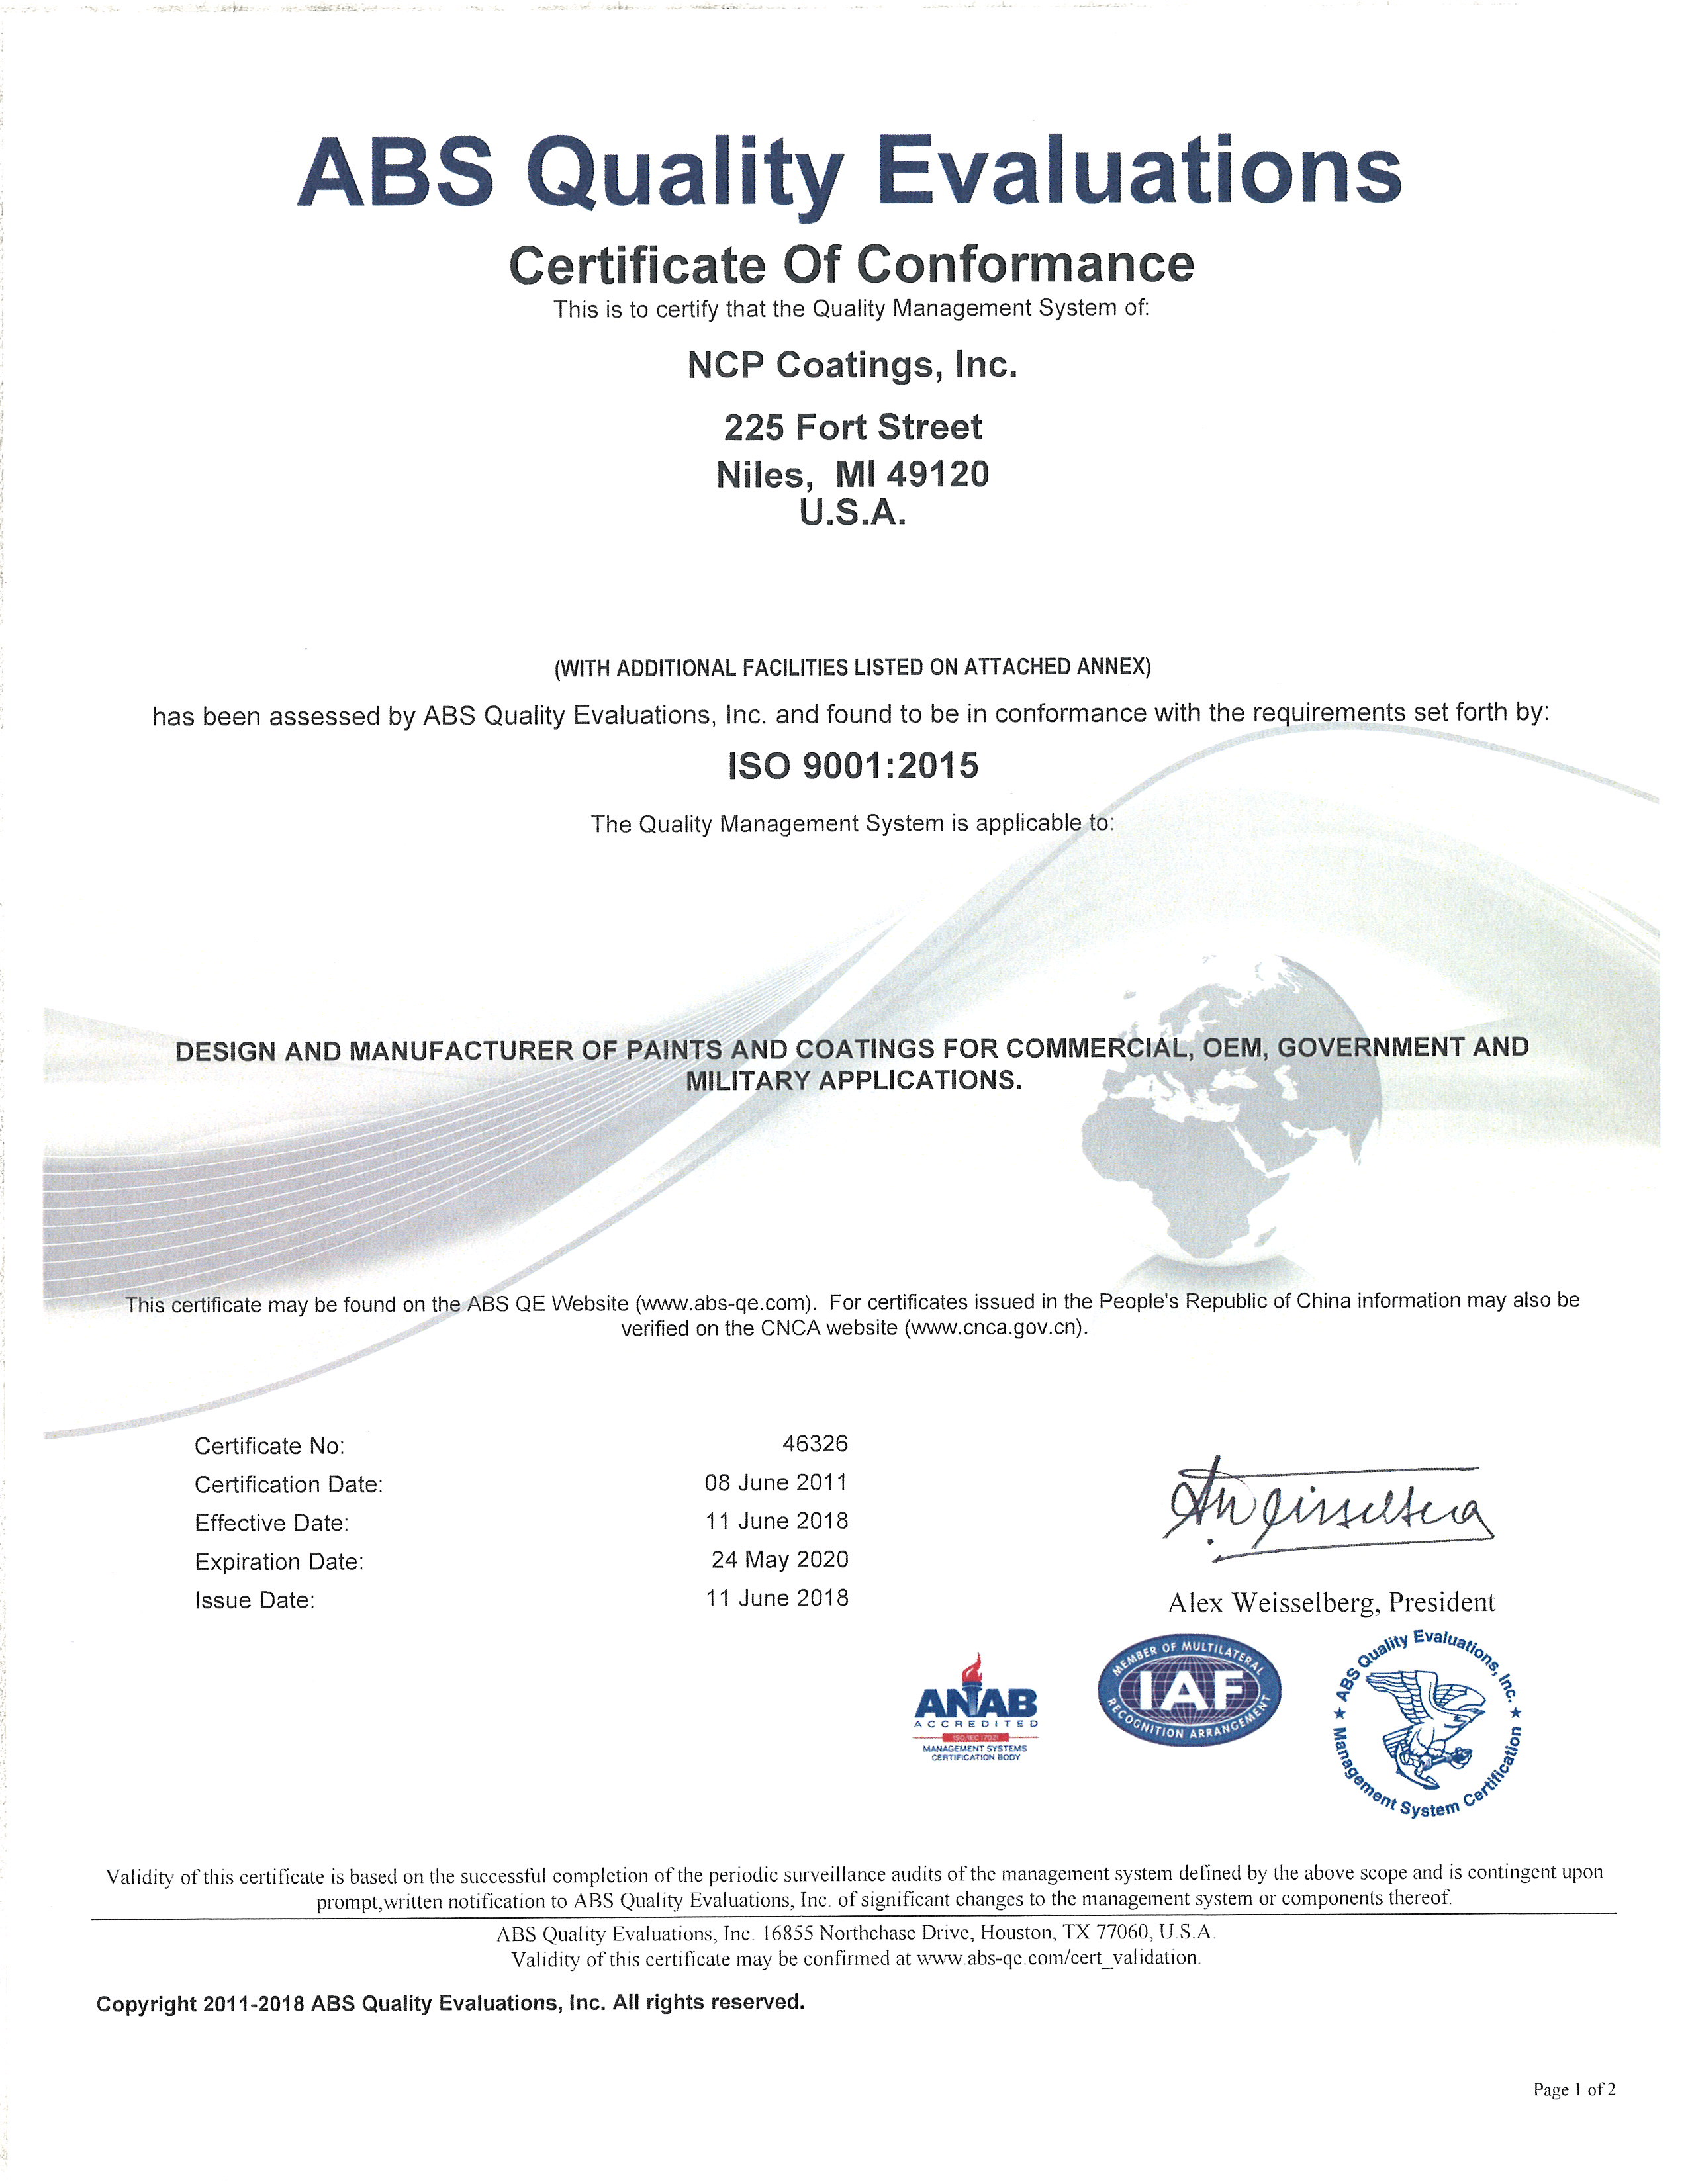 NCP Coatings ISO 9001:2015 Certificate of Conformance